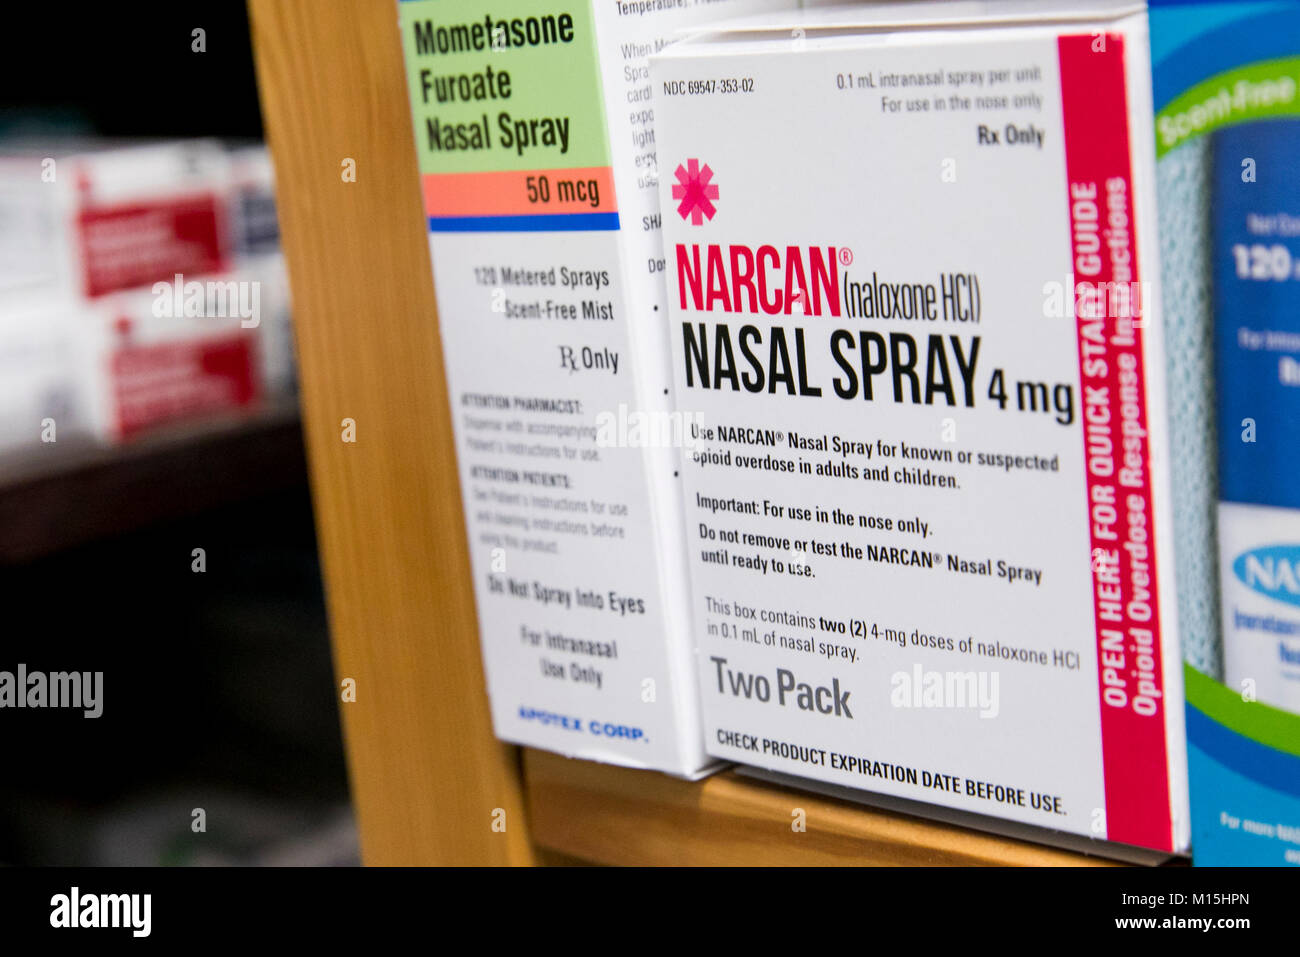 A box of Narcan (Naloxone) nasal spray for treating Opioid overdoses as seen on a pharmacy shelf. - Stock Image